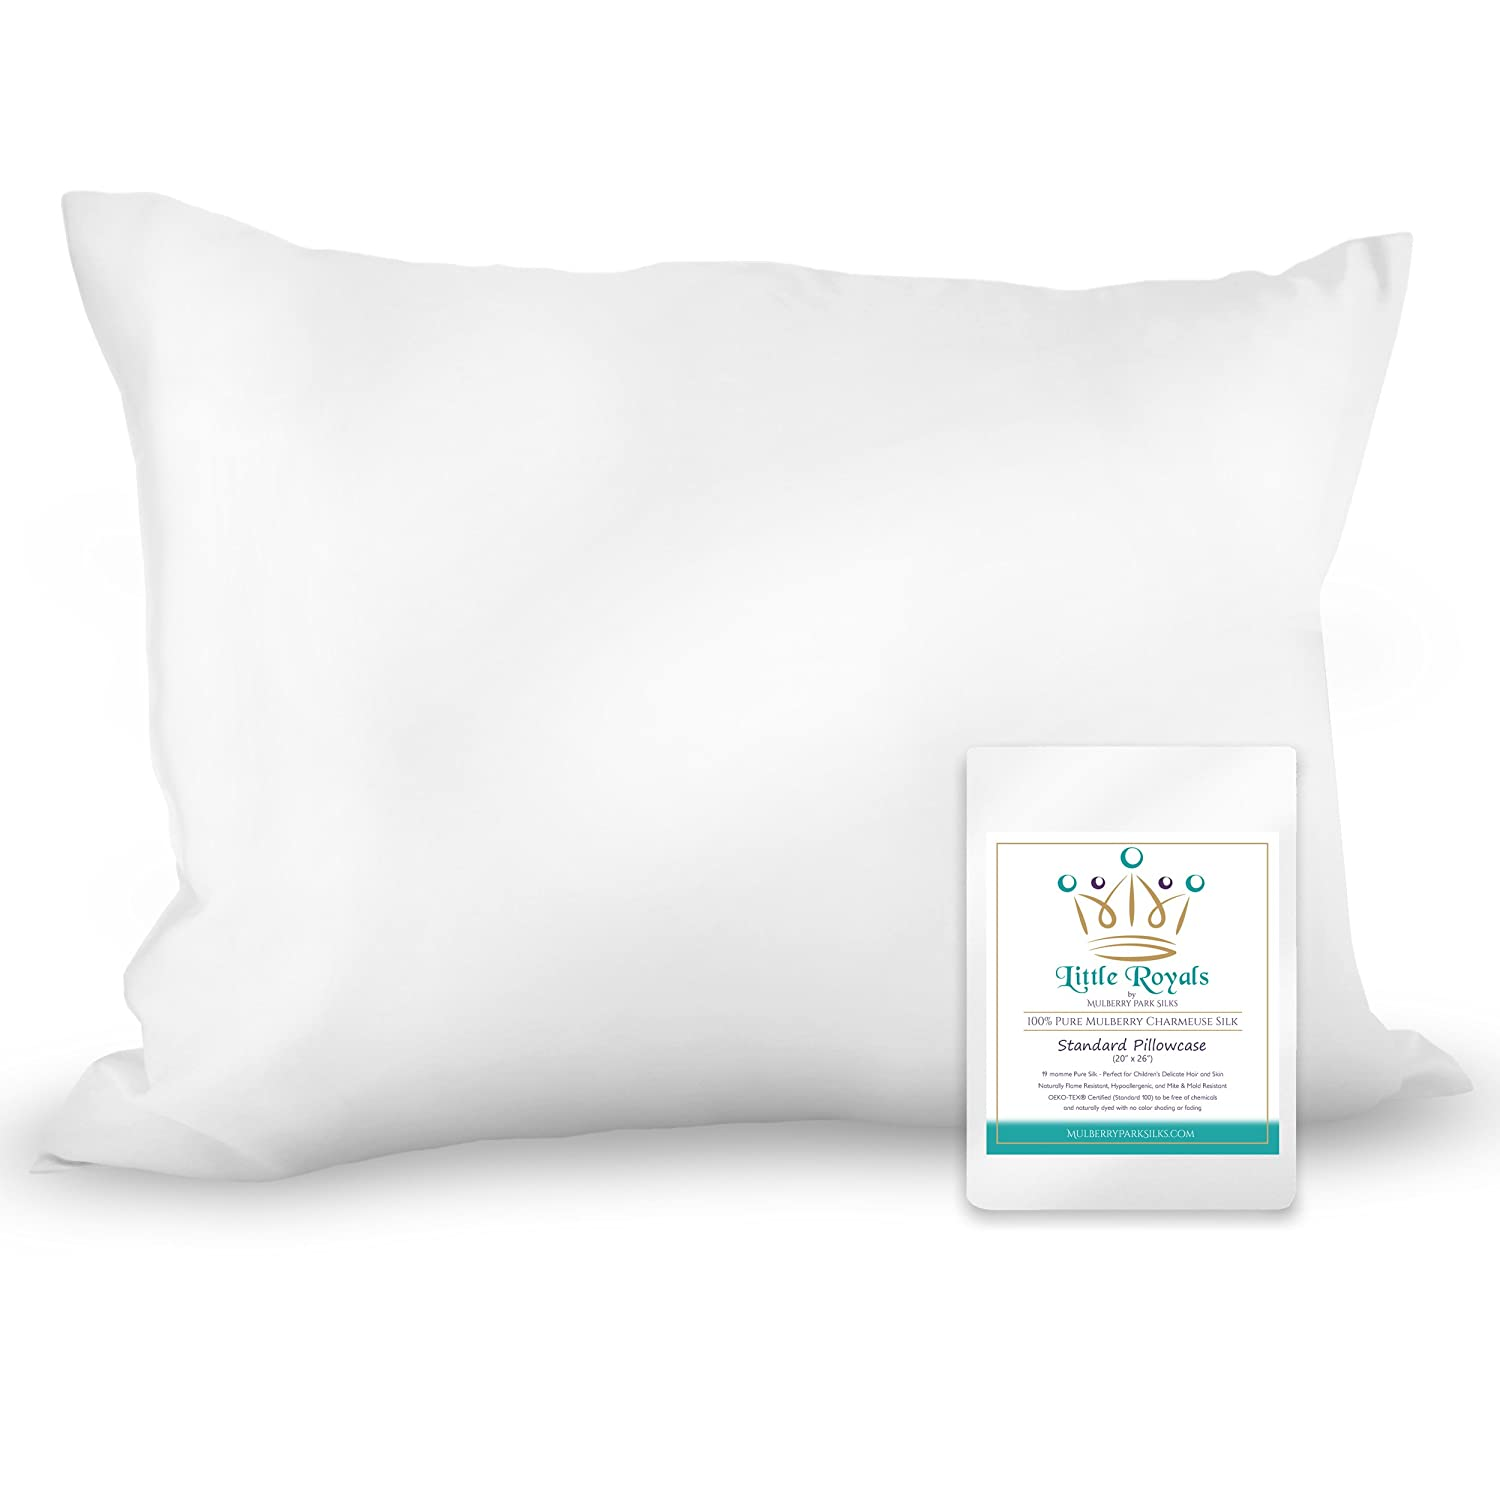 Little Royals - 100% Pure Charmeuse Silk Standard Pillowcase - Natural White - Soft, Gentle Fabric for a Child